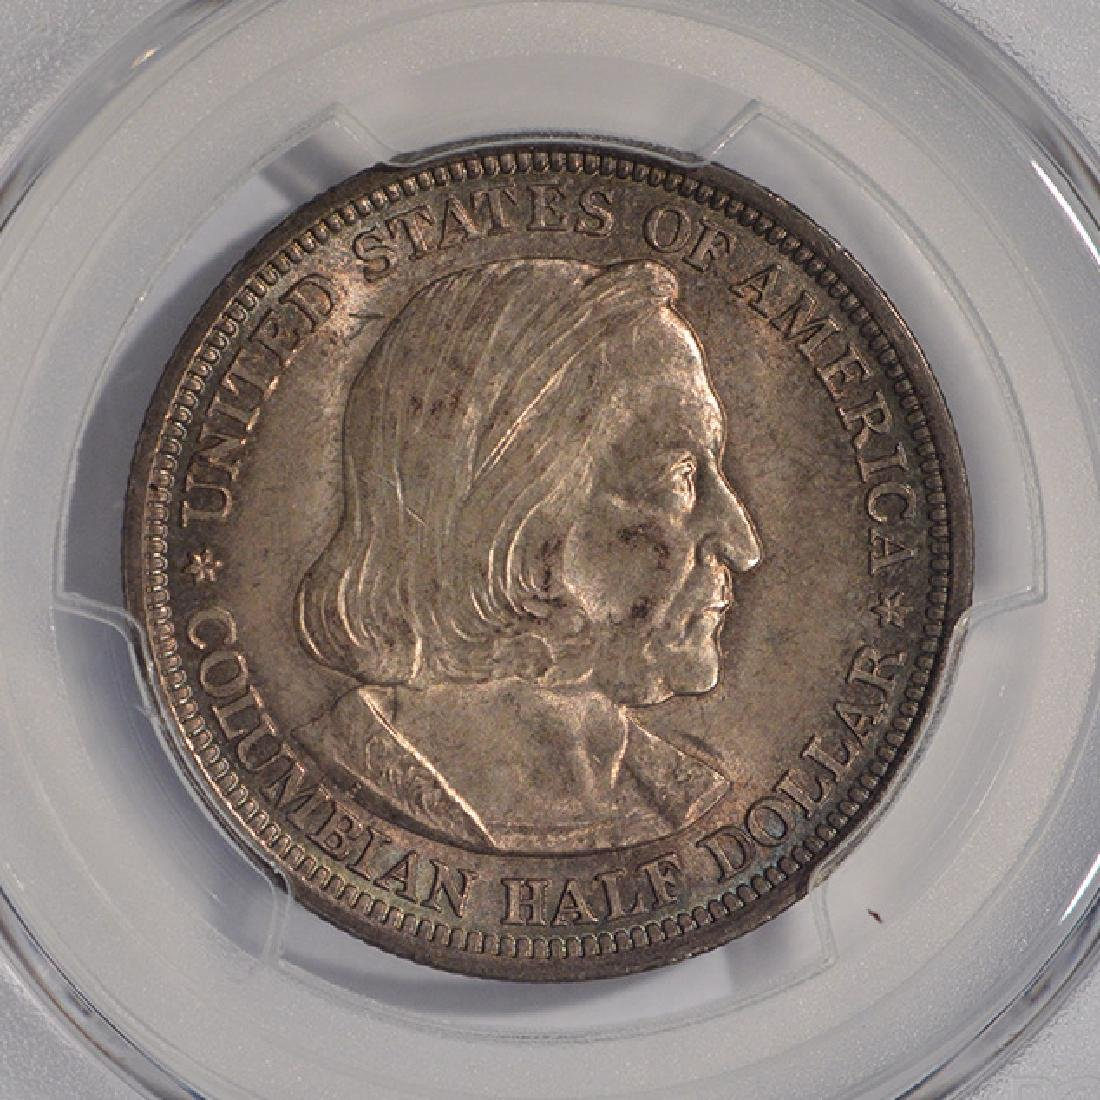 1893 Columbian Exposition Half Dollar Coin PCGS MS64 - 3